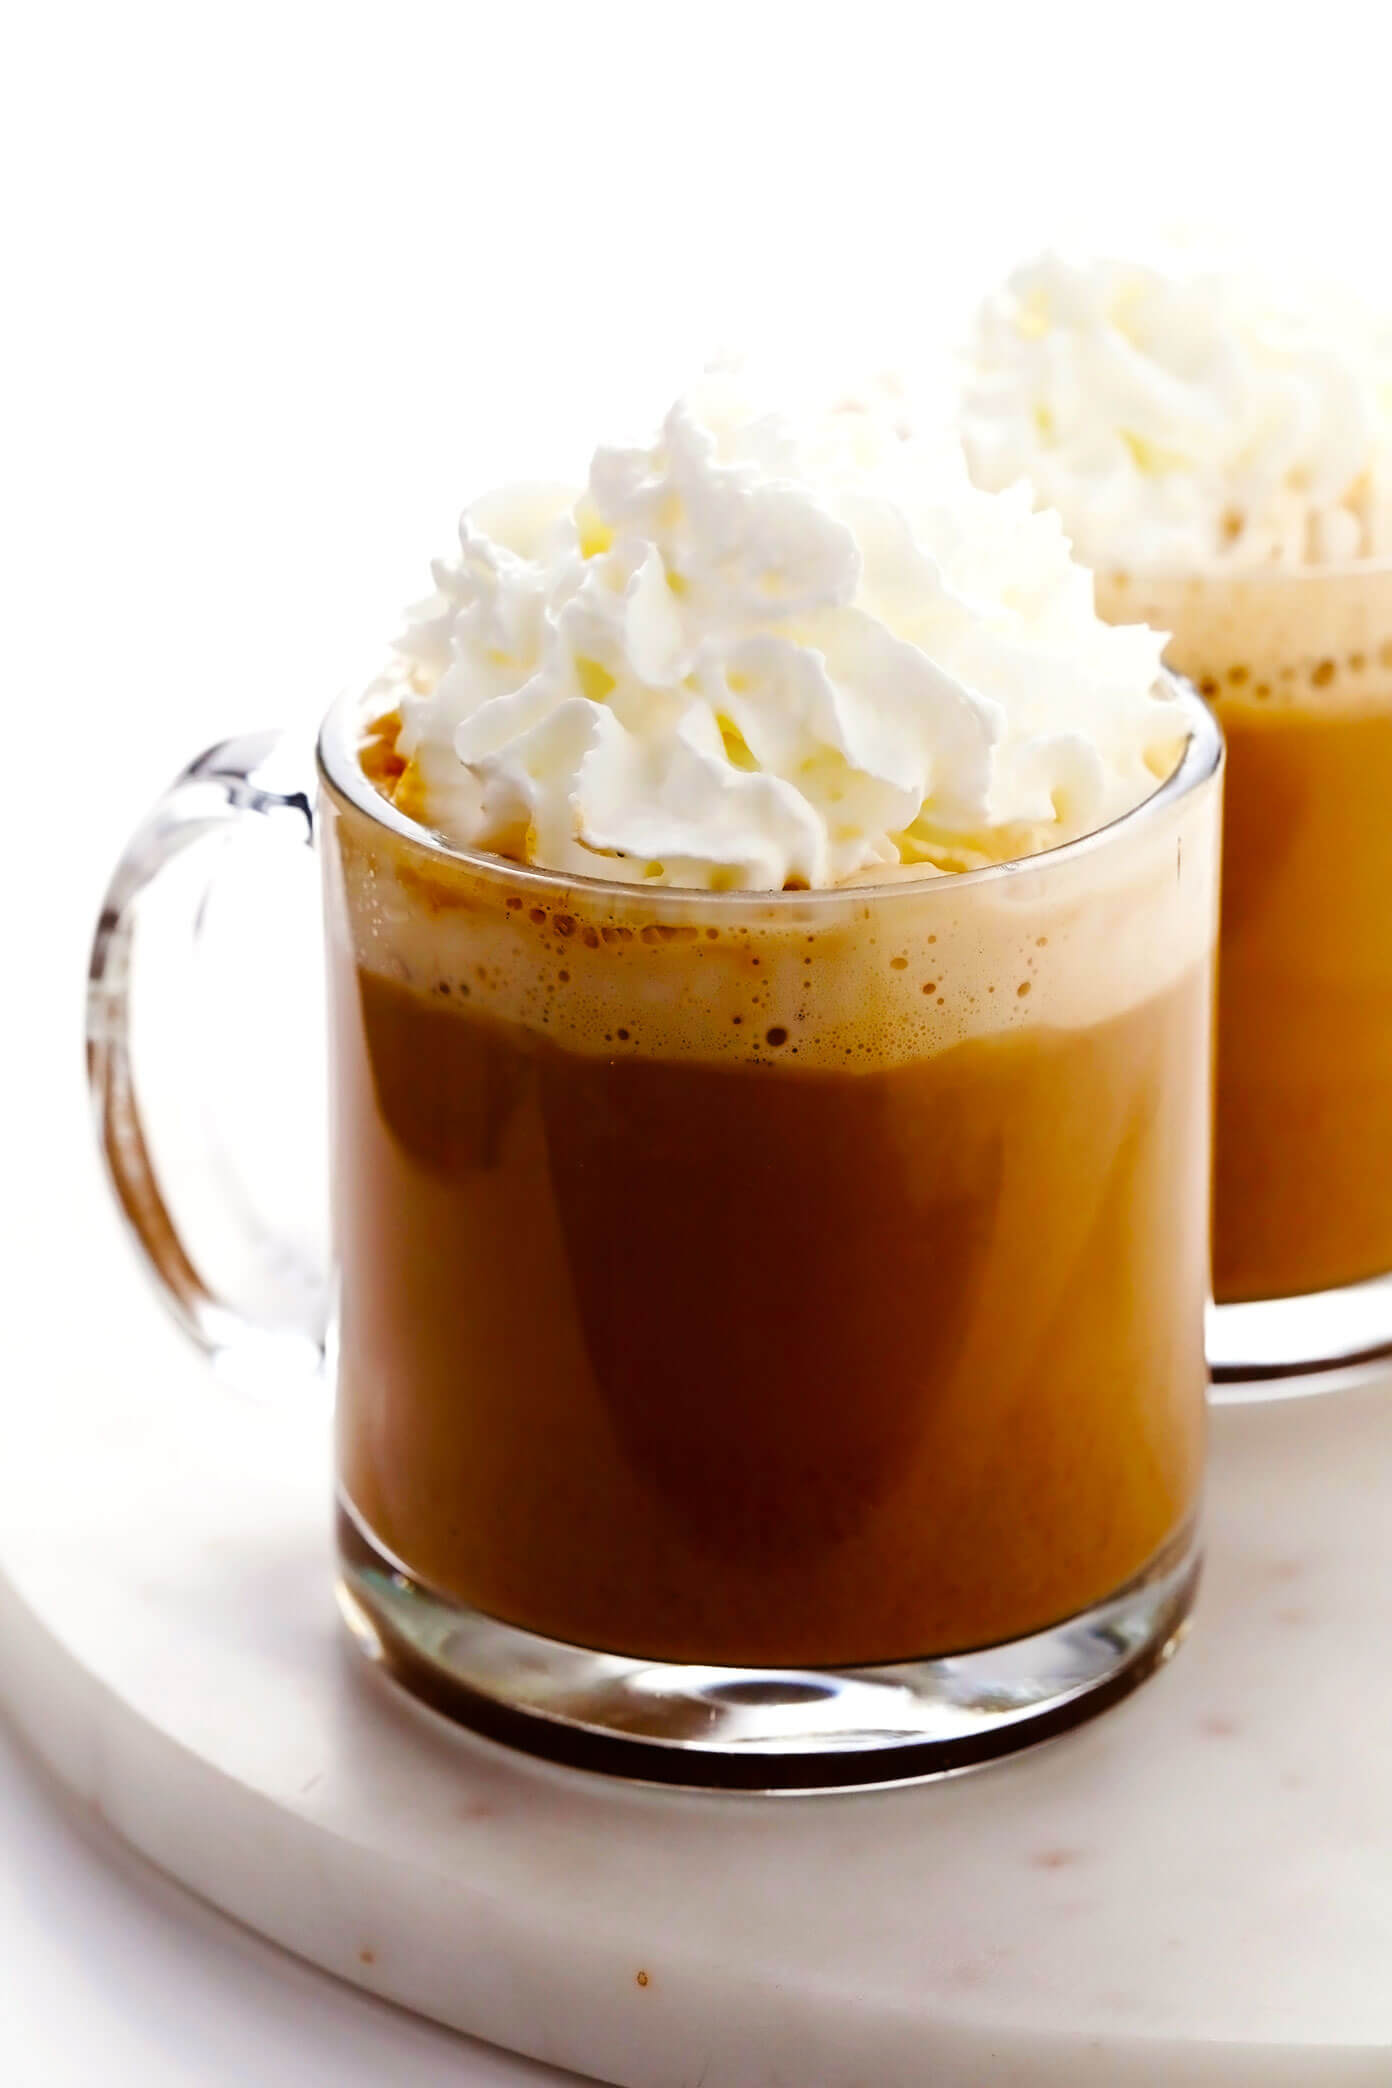 Homemade Pumpkin Spice Latte with Whipped Cream